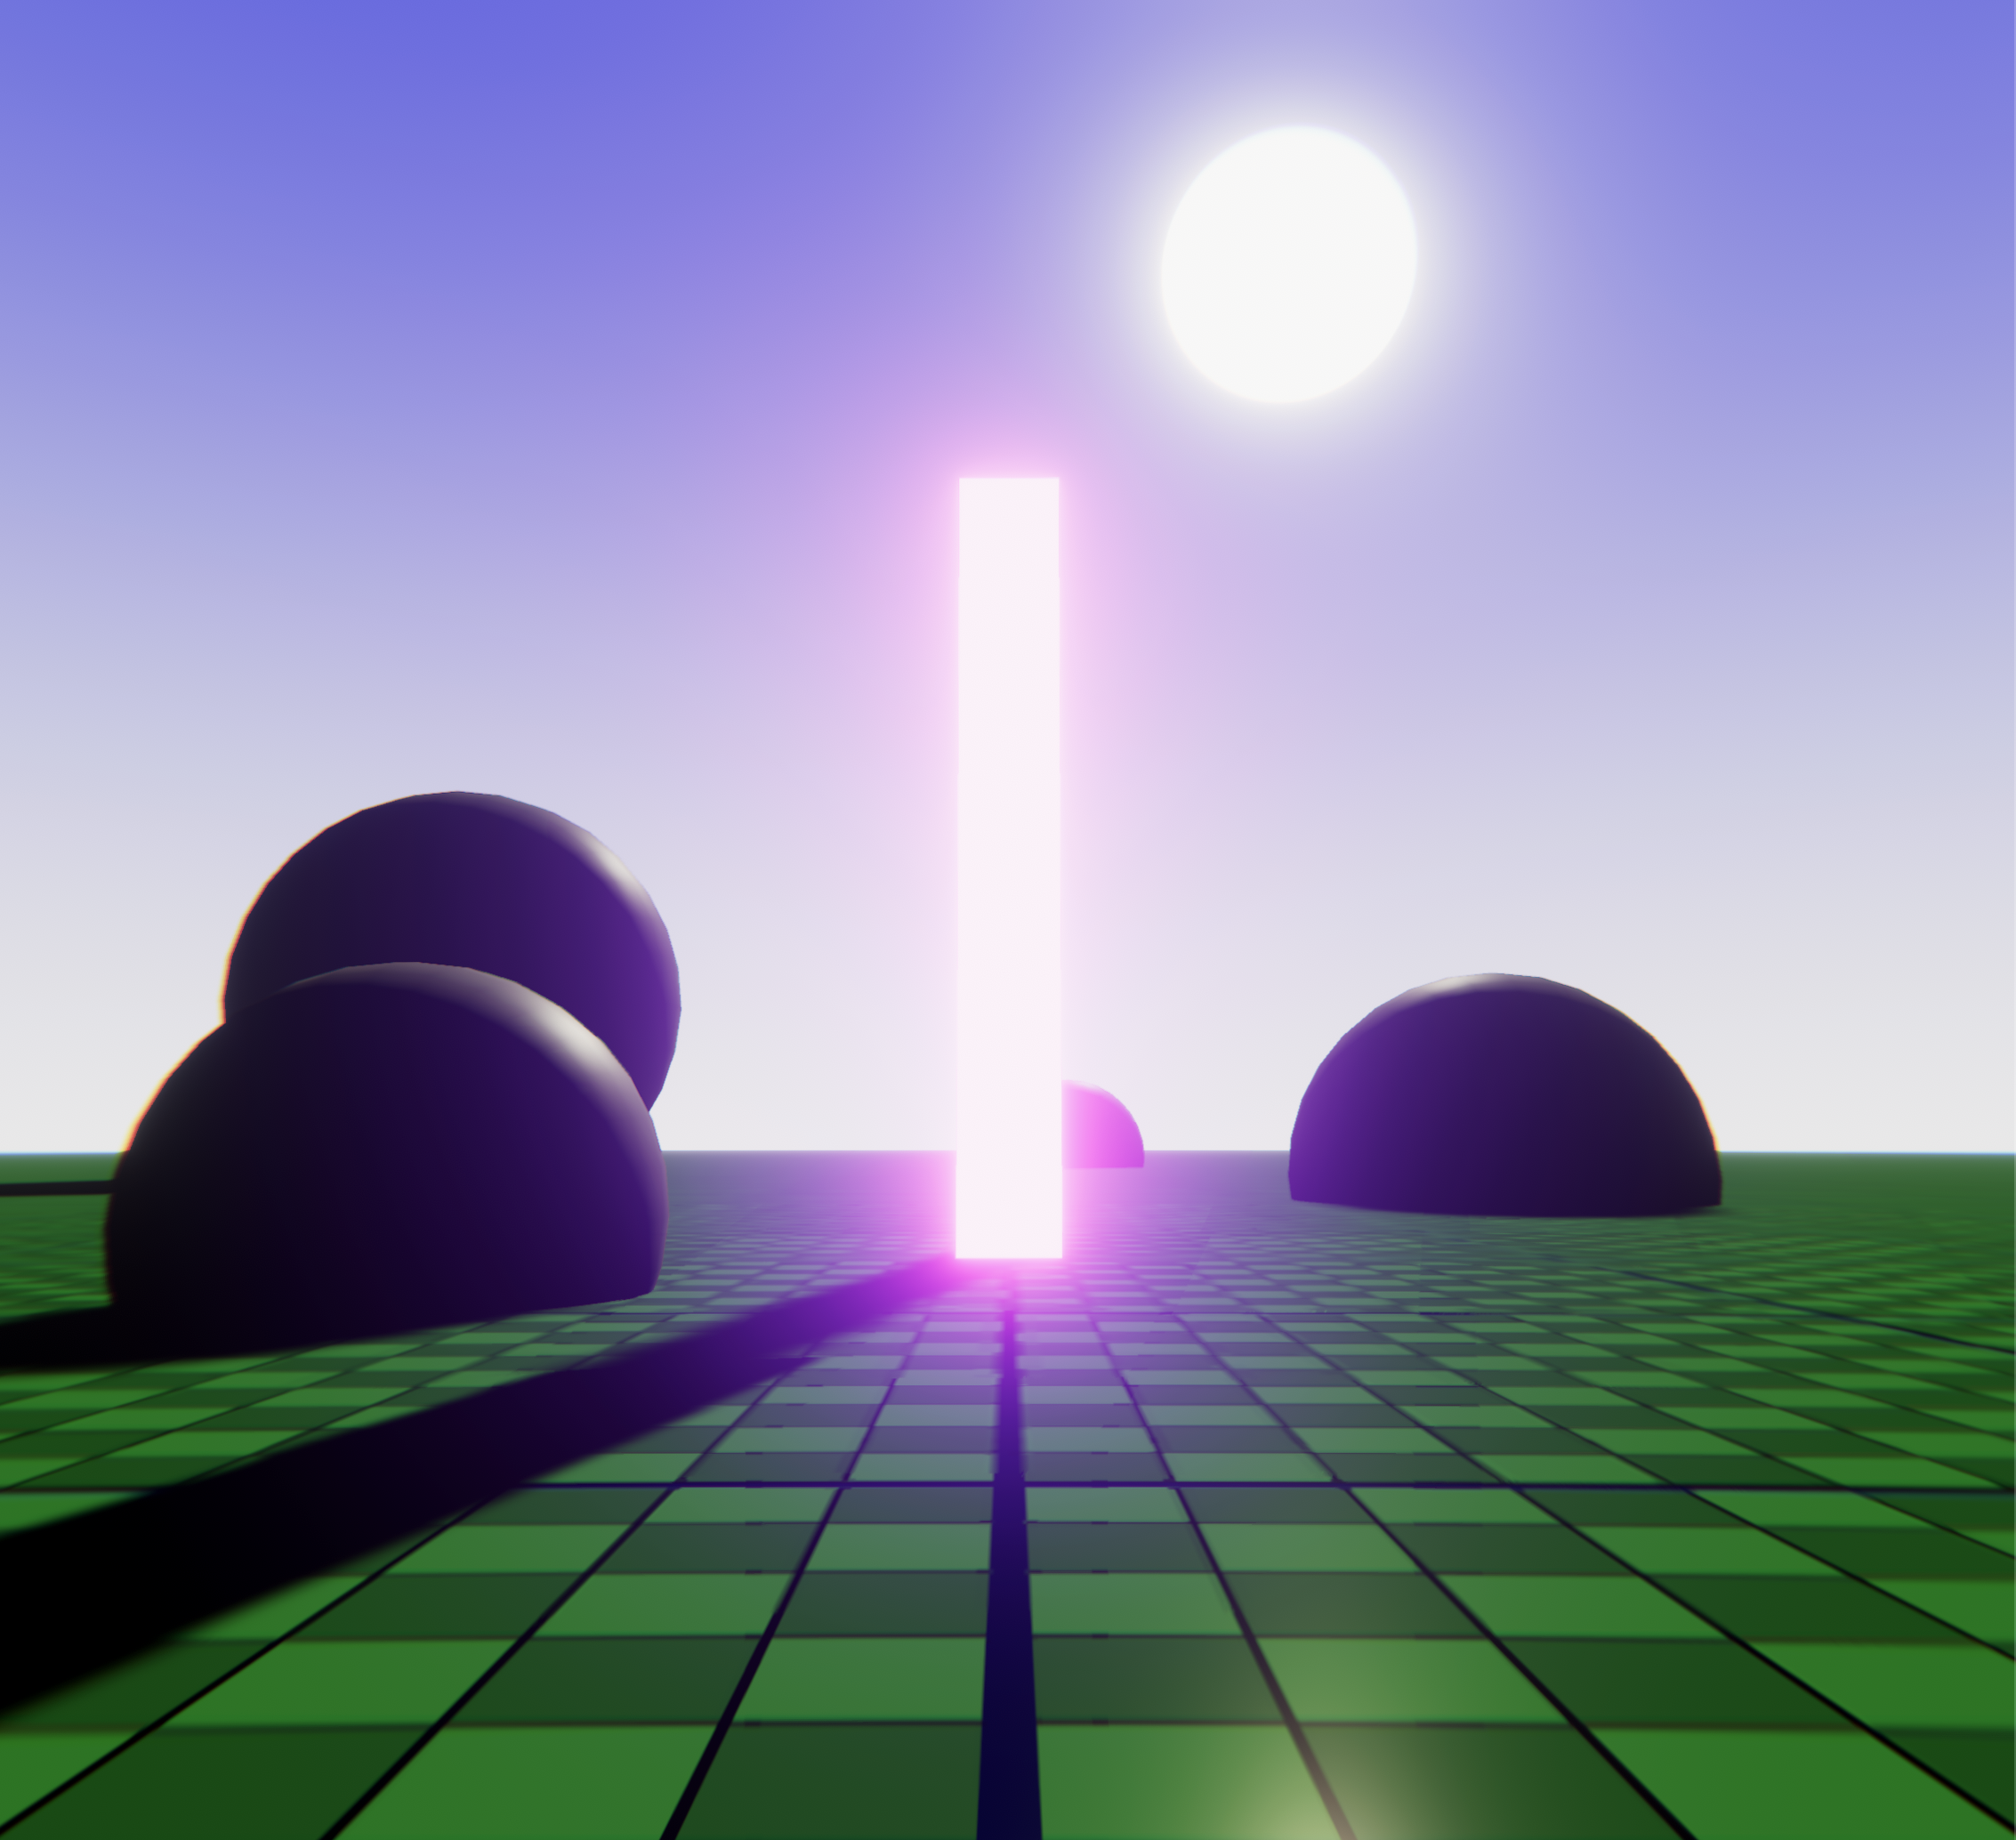 Image displaying the shader graph sun used in the game scene.